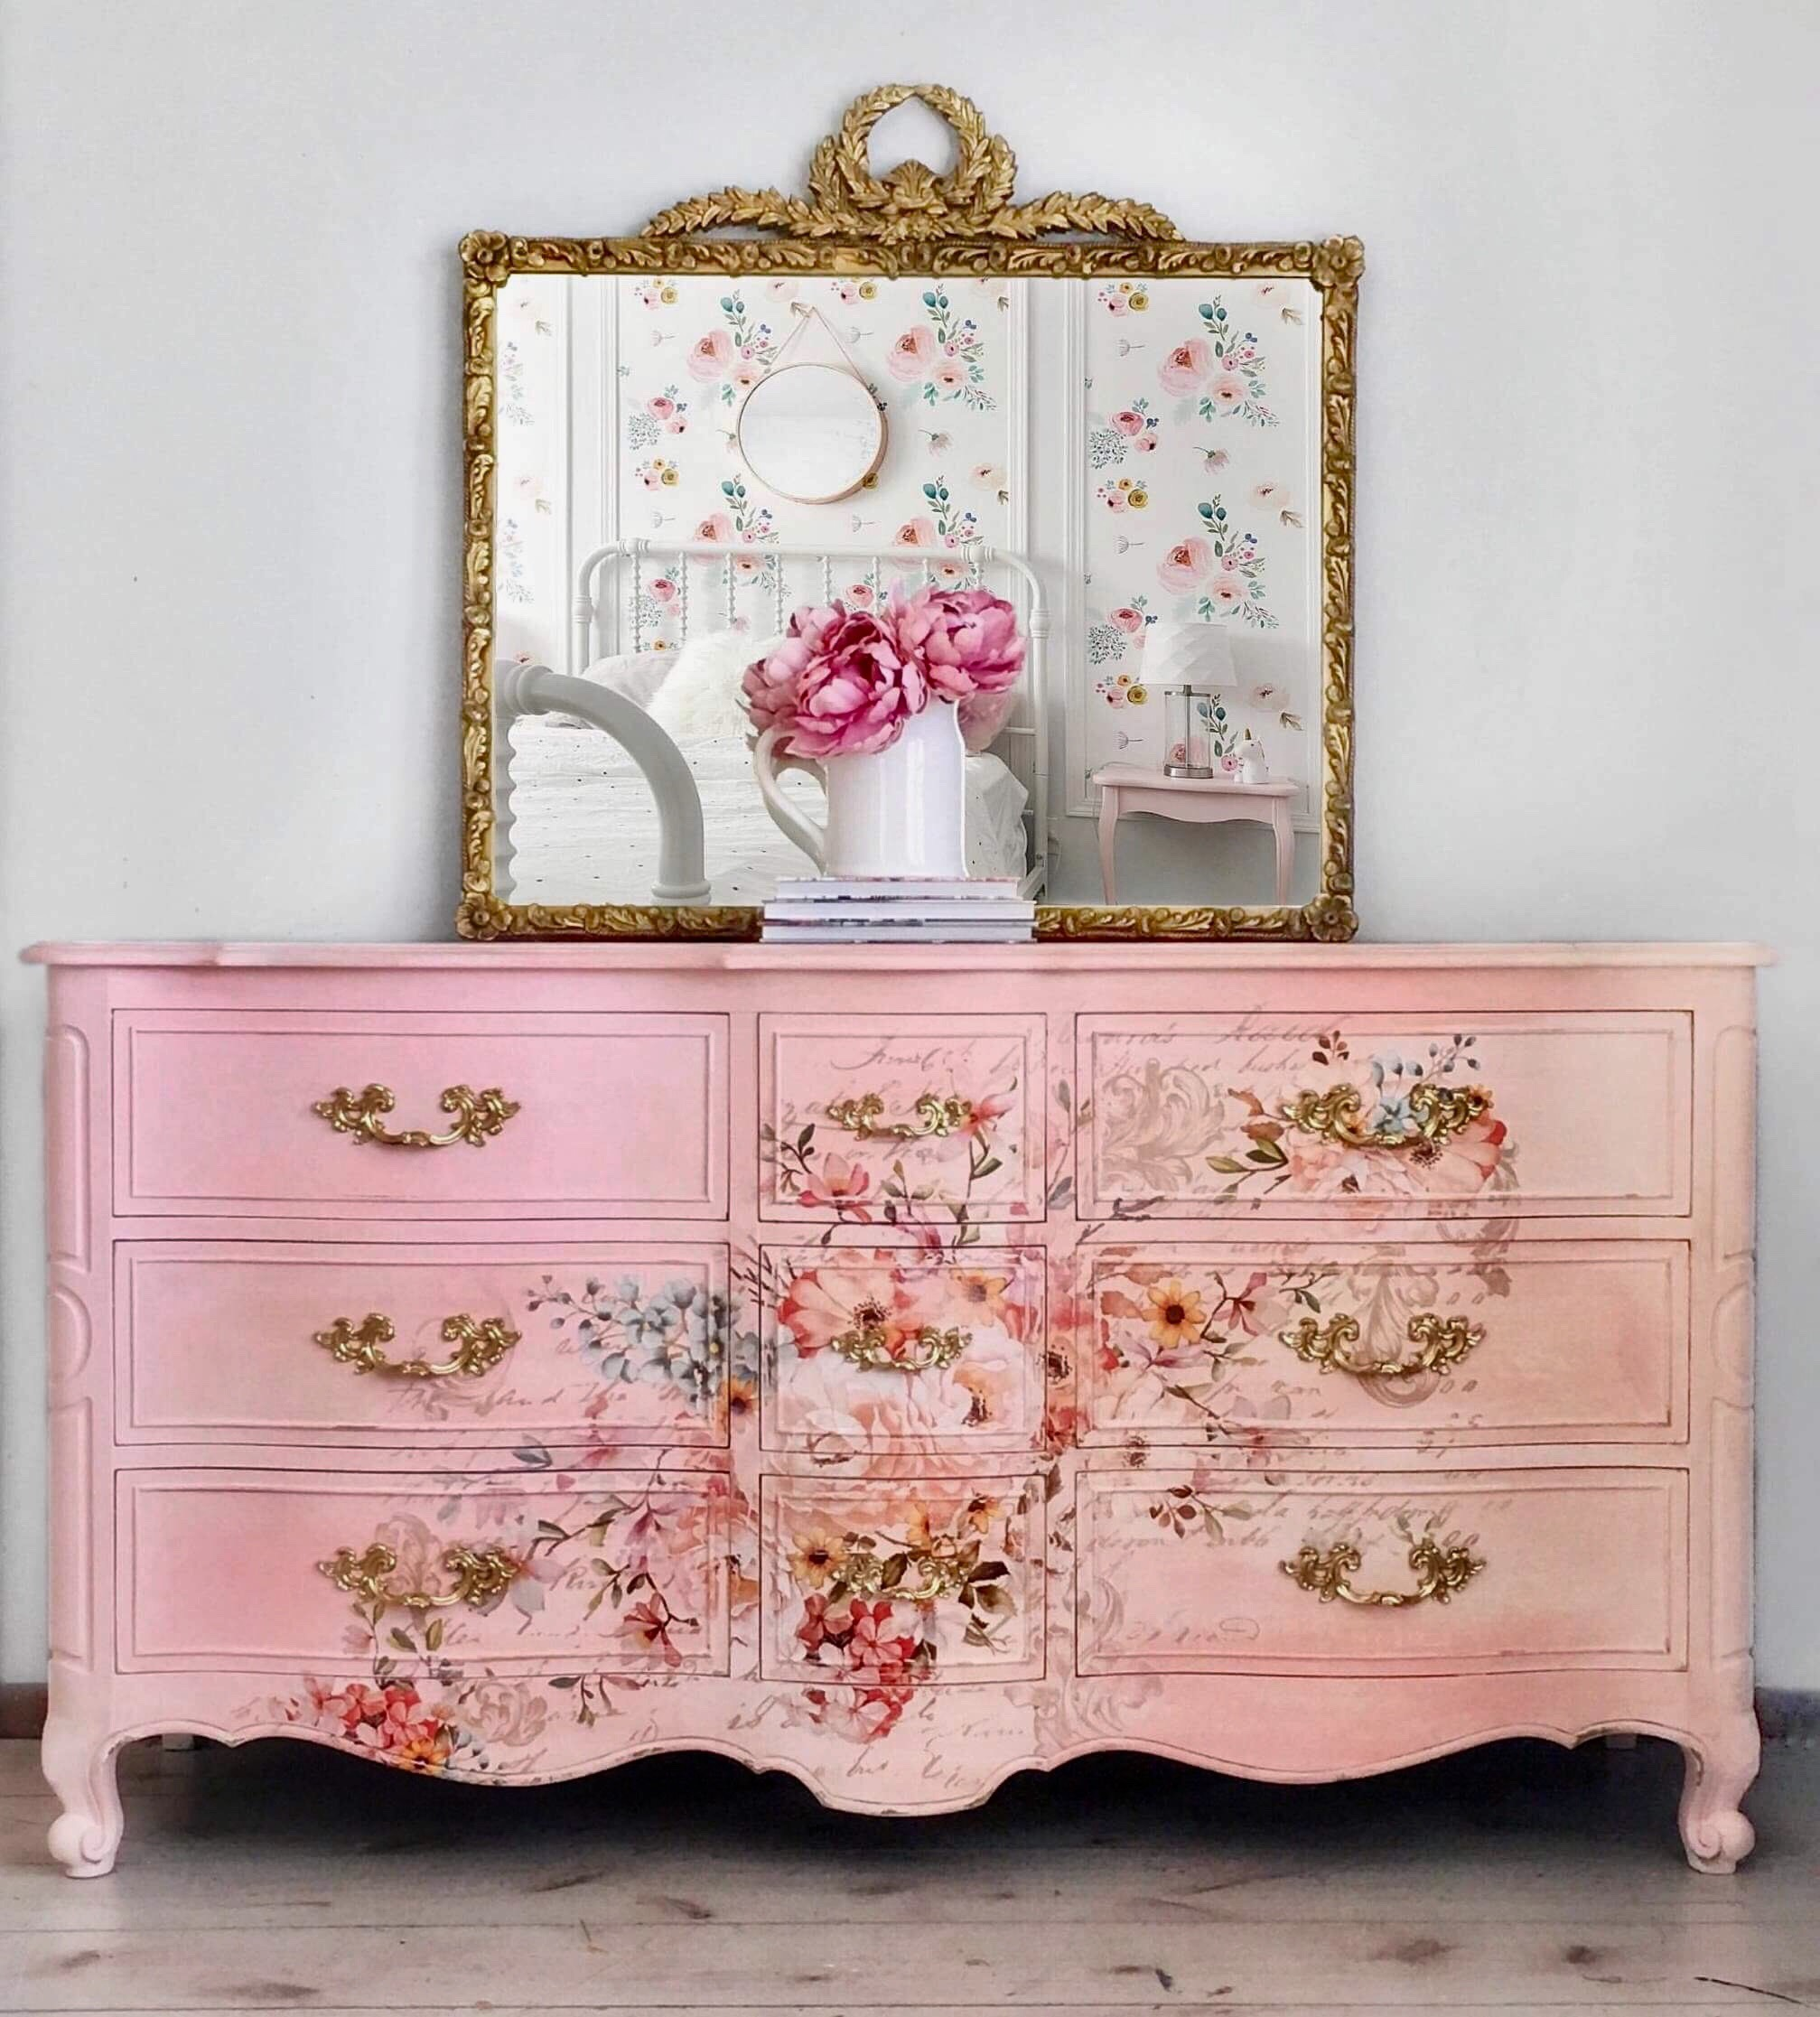 """This gorgeous French provincial dresser was hand painted in beautiful shades of pink and adorned with the """"Rose Celebration"""" Decor Transfer™ across the front. The transfer works perfectly with the details, curves and vintage hardware that make this piece a one-of-a-kind beauty."""